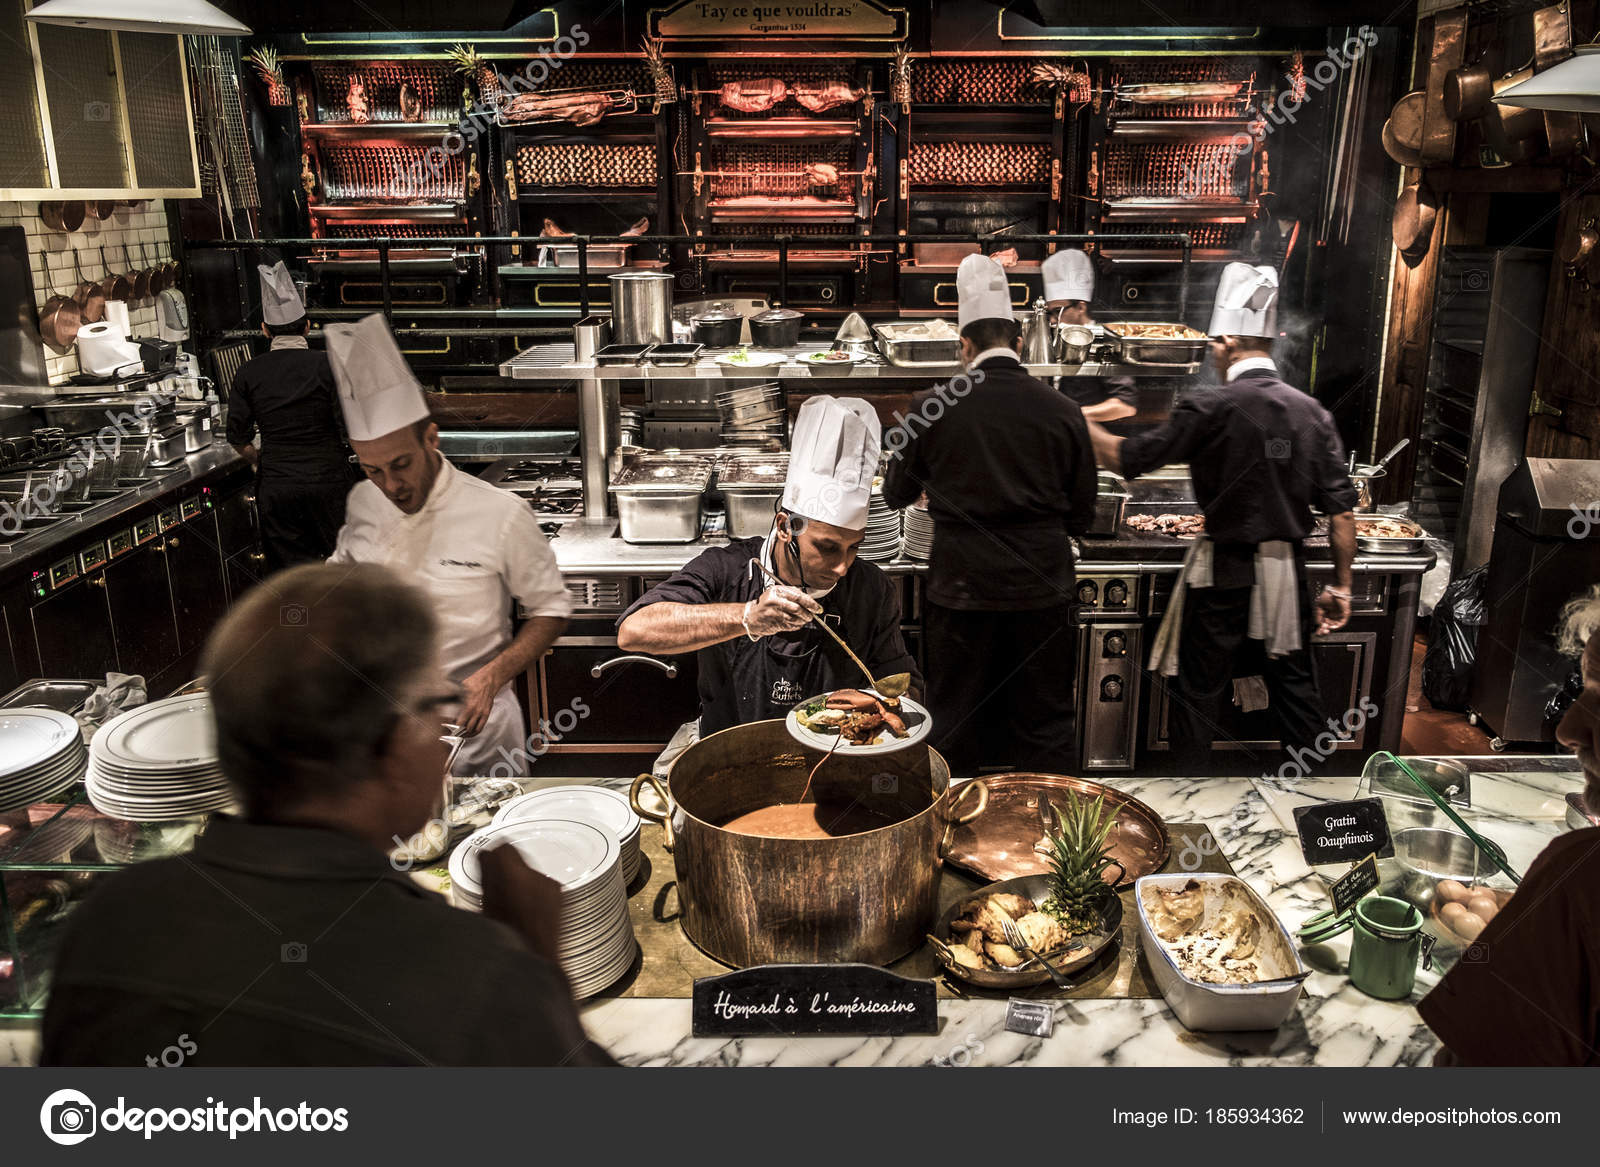 Les Buffets Interior Of Les Grands Buffets Stock Editorial Photo Cspcsp